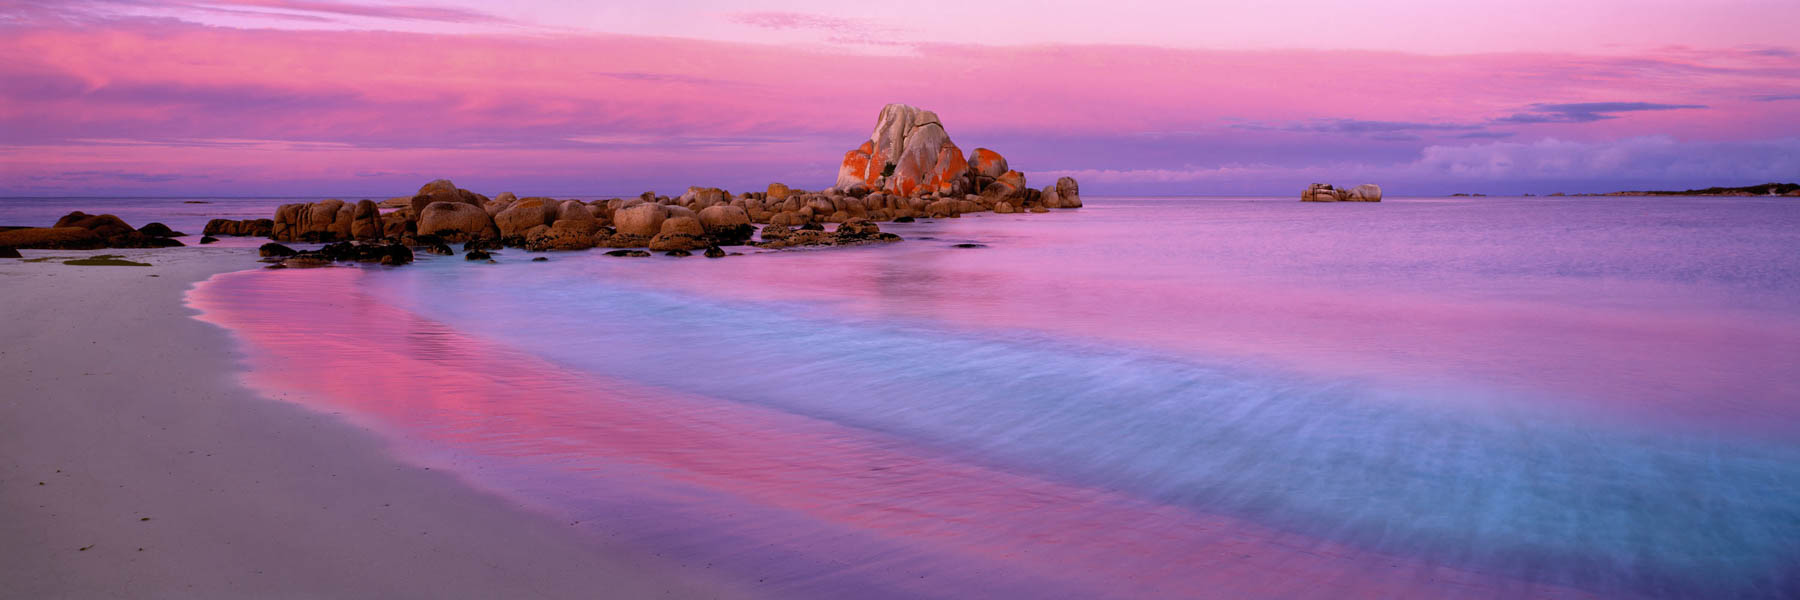 Pink twilight glow over Picnic Rocks in Tasmania